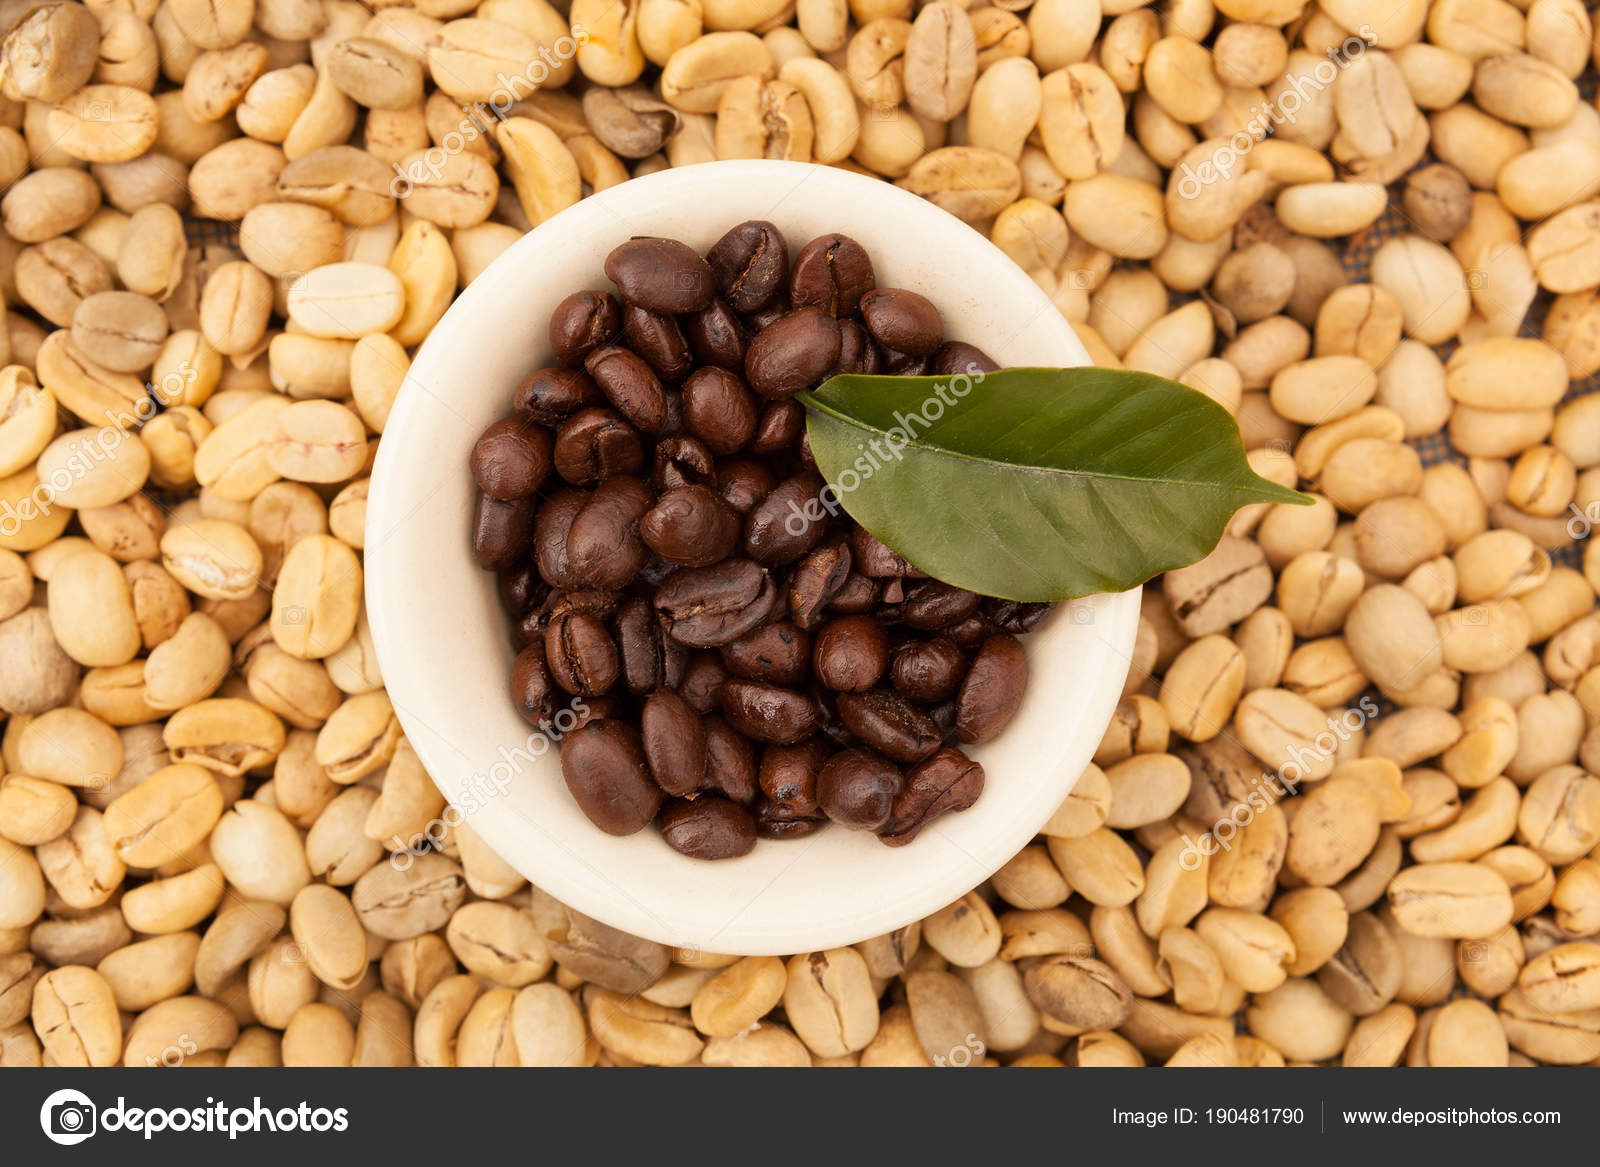 Unroasted Coffee Beans >> Roasted And Unroasted Coffee Beans Stock Photo C Eskymaks